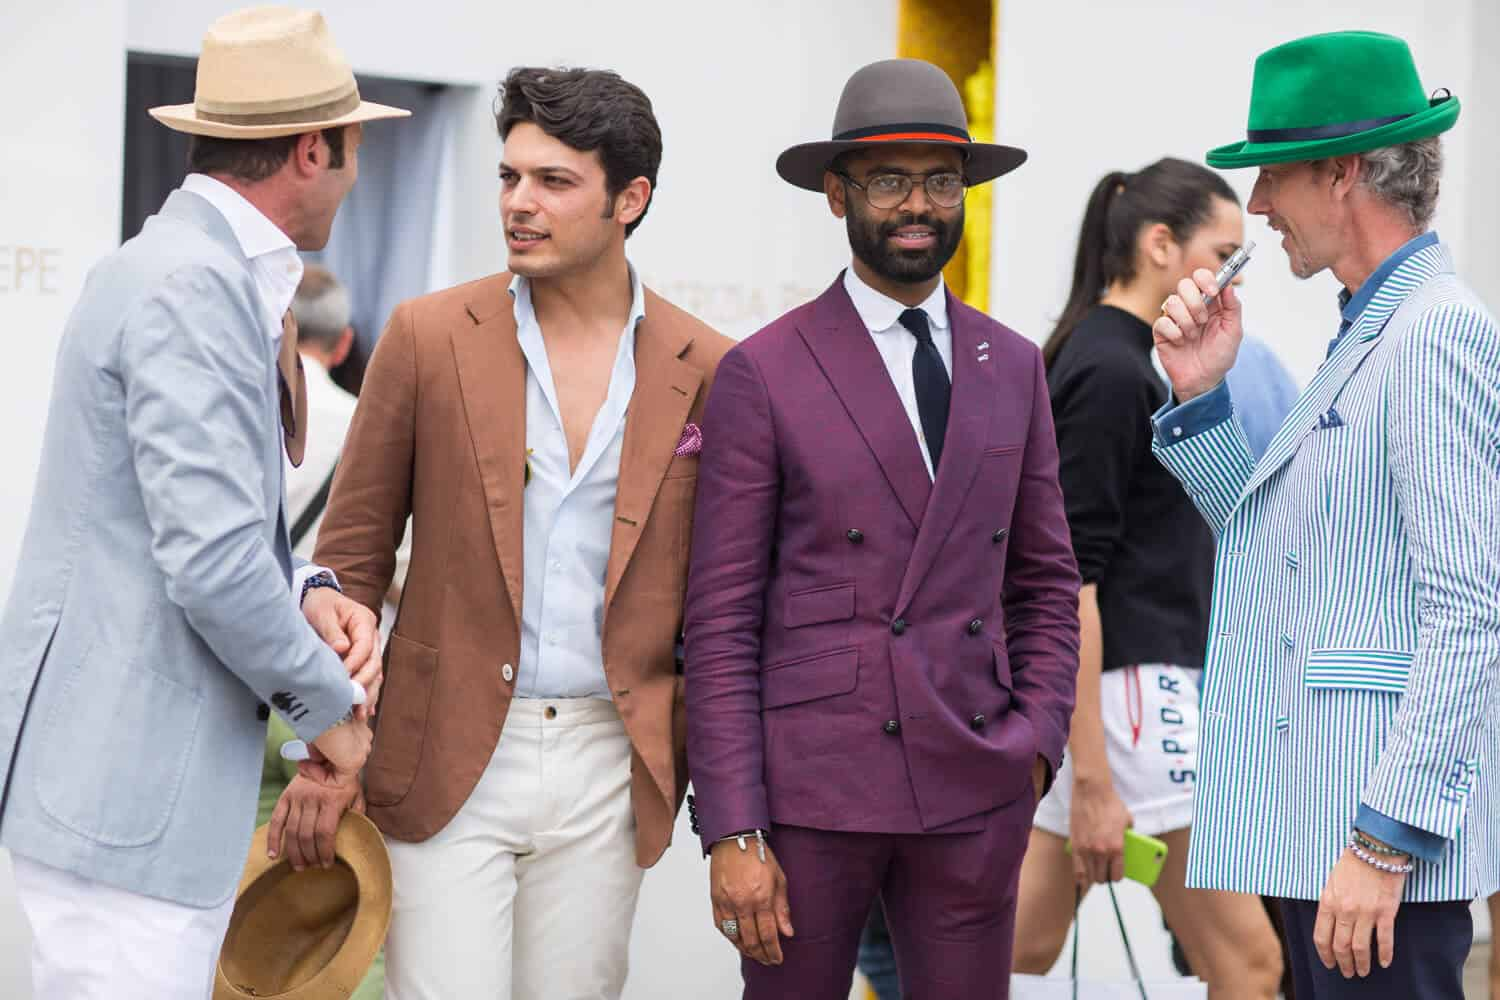 Men's Summer Outfits & Hot Weather Classic Style Suit Ideas ...